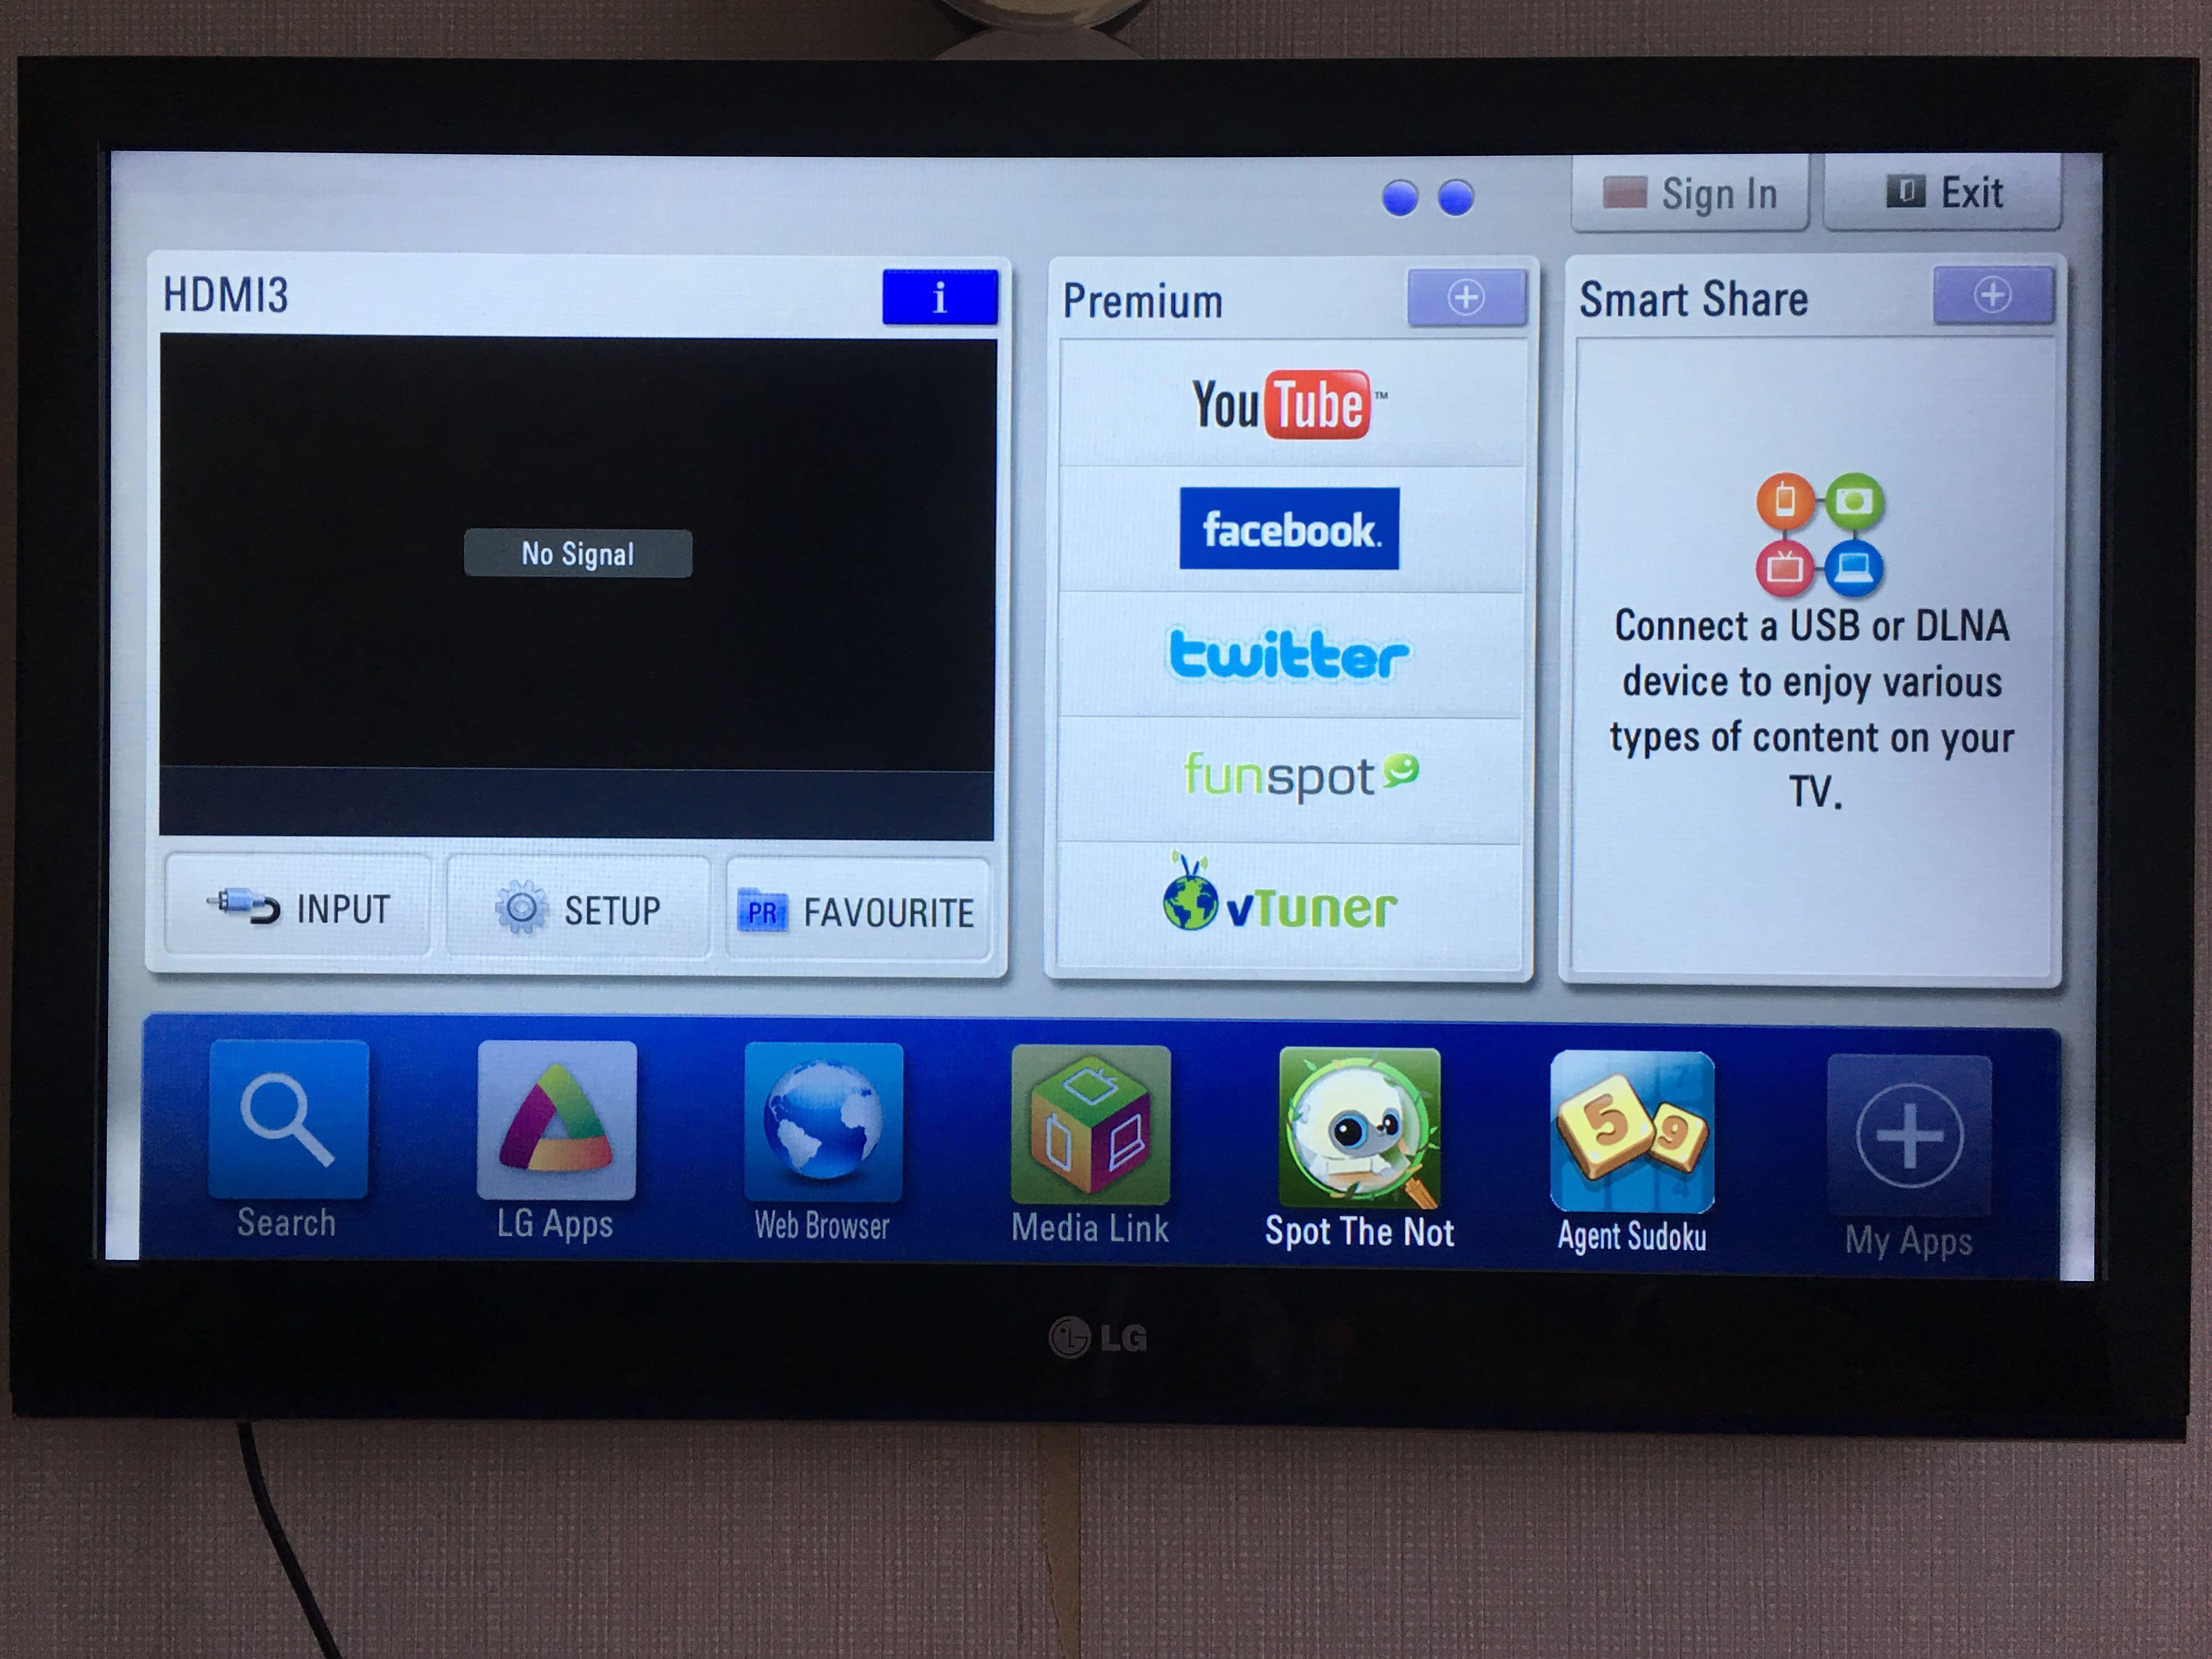 LG LED Smart Internet TV in very good condition and pre